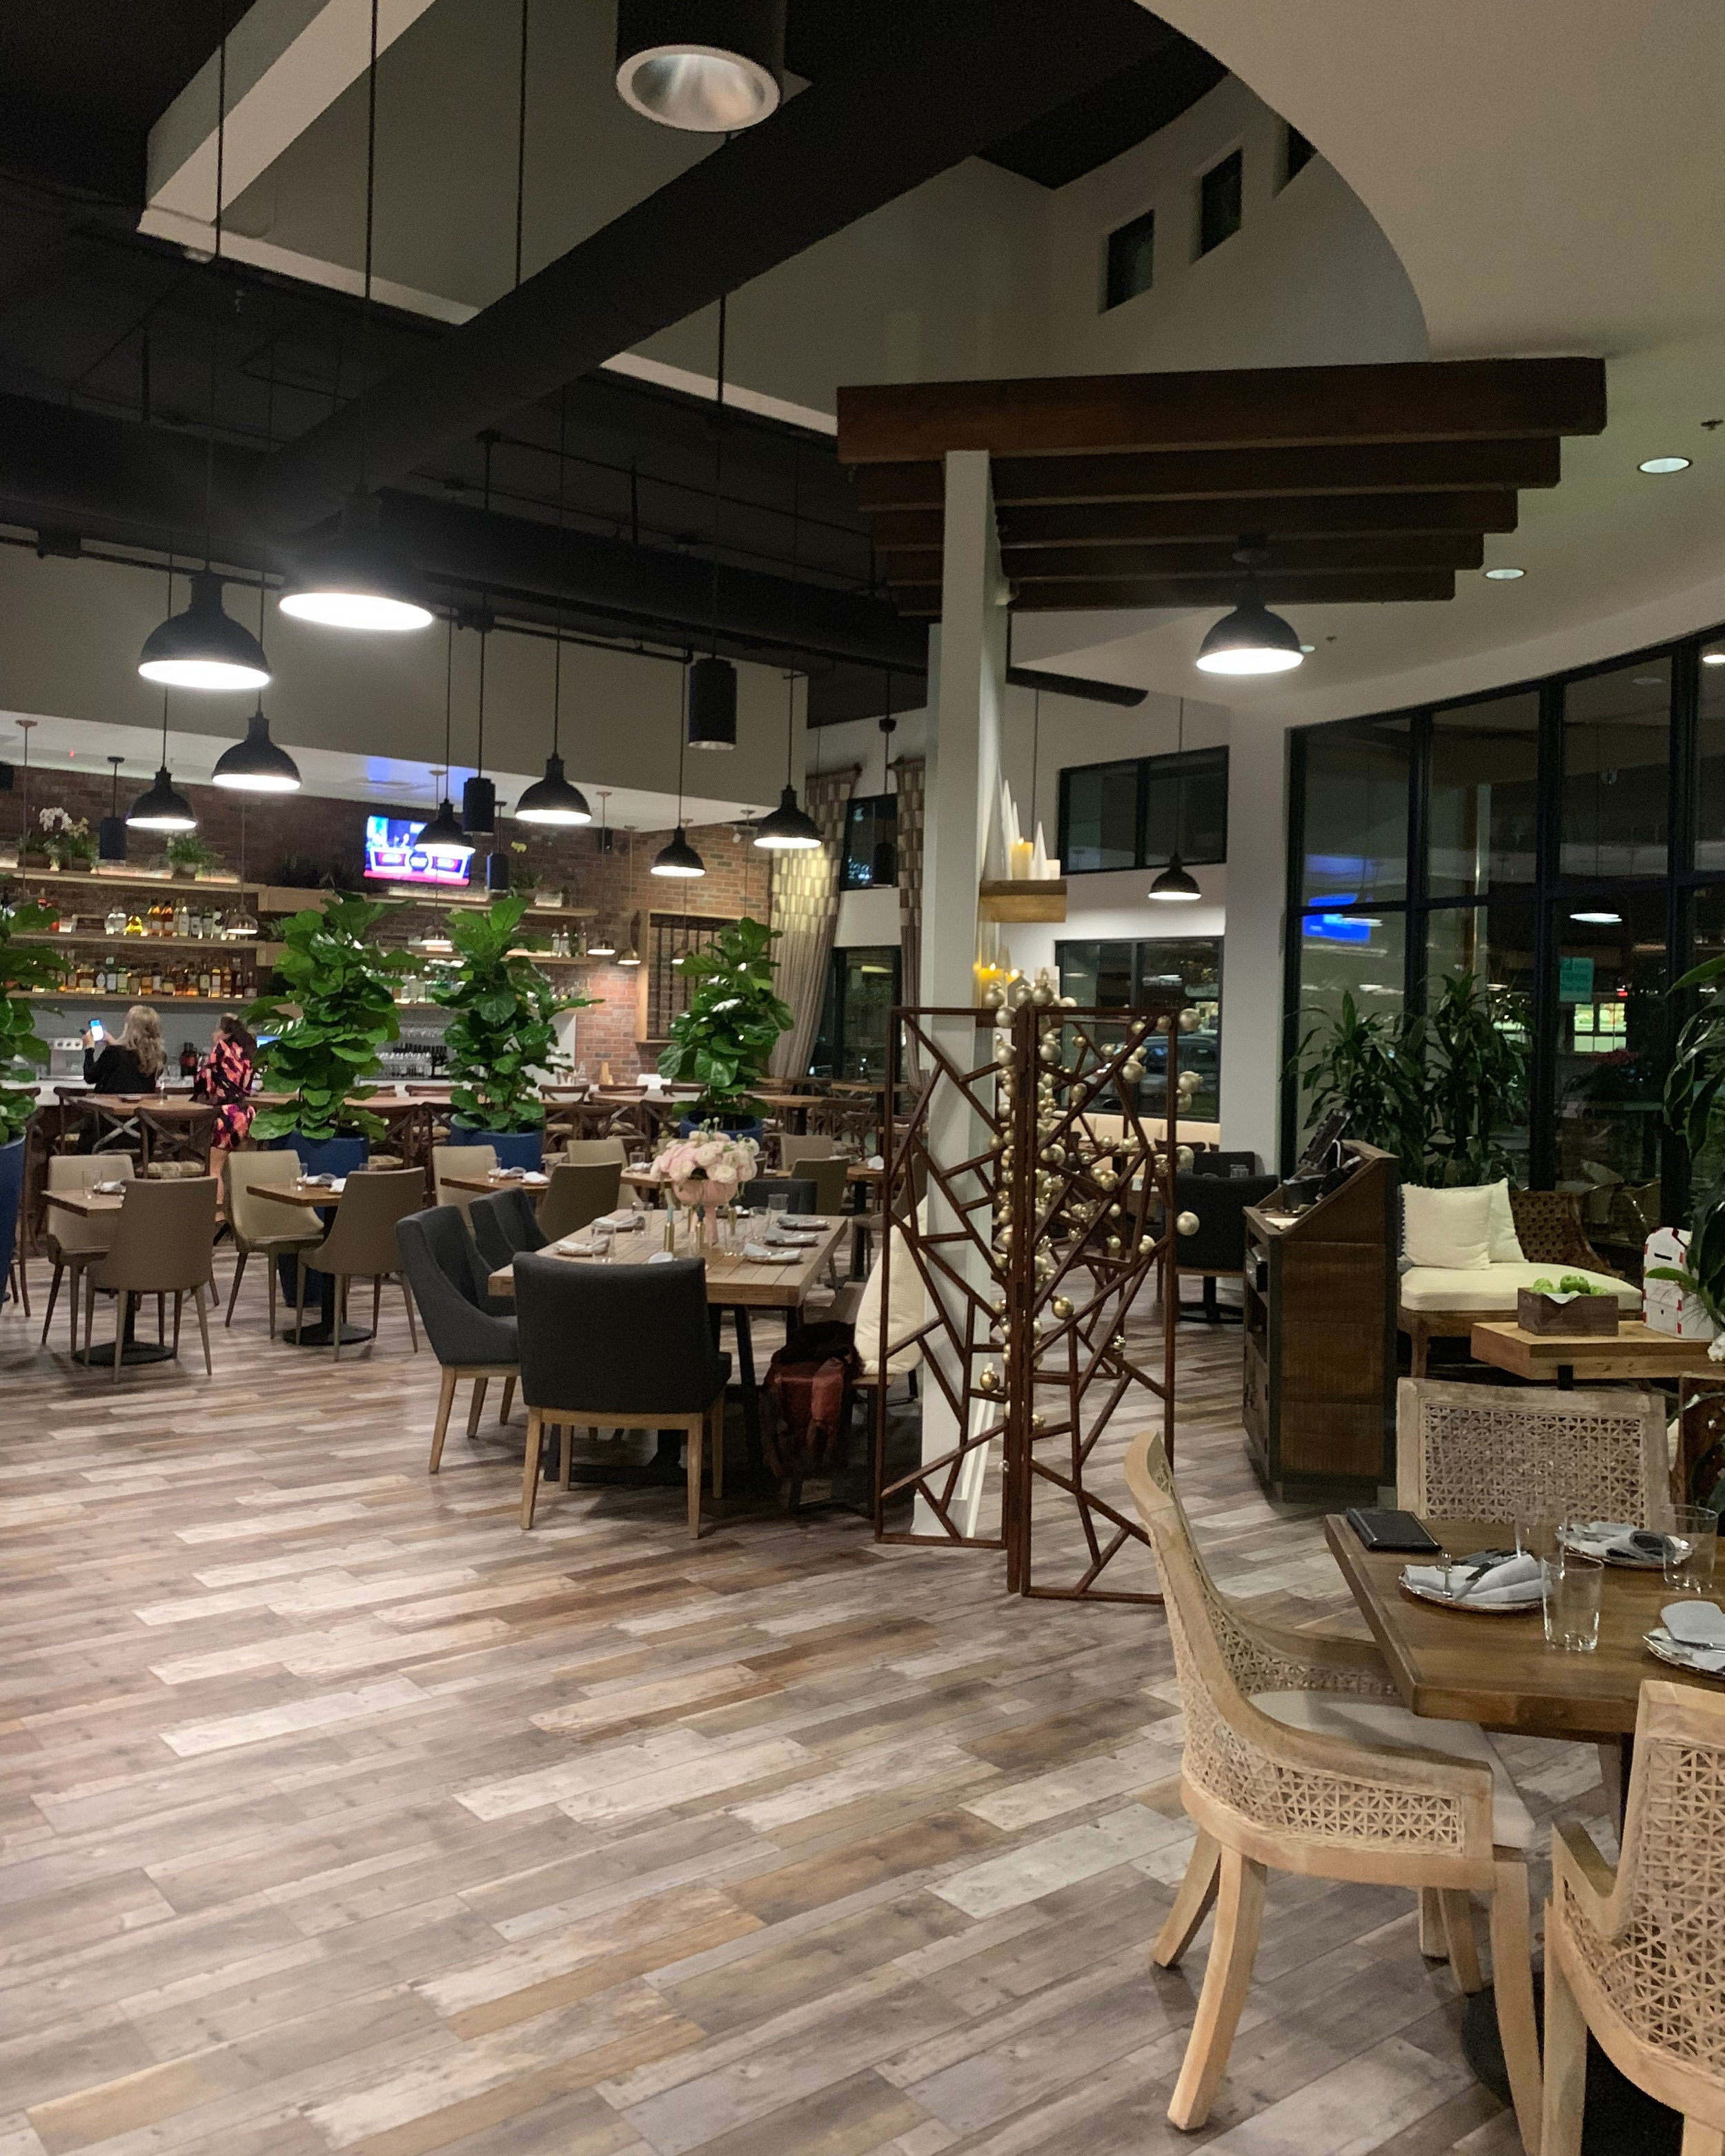 Mike's Green Grass Blog - Danville Foodie Experience